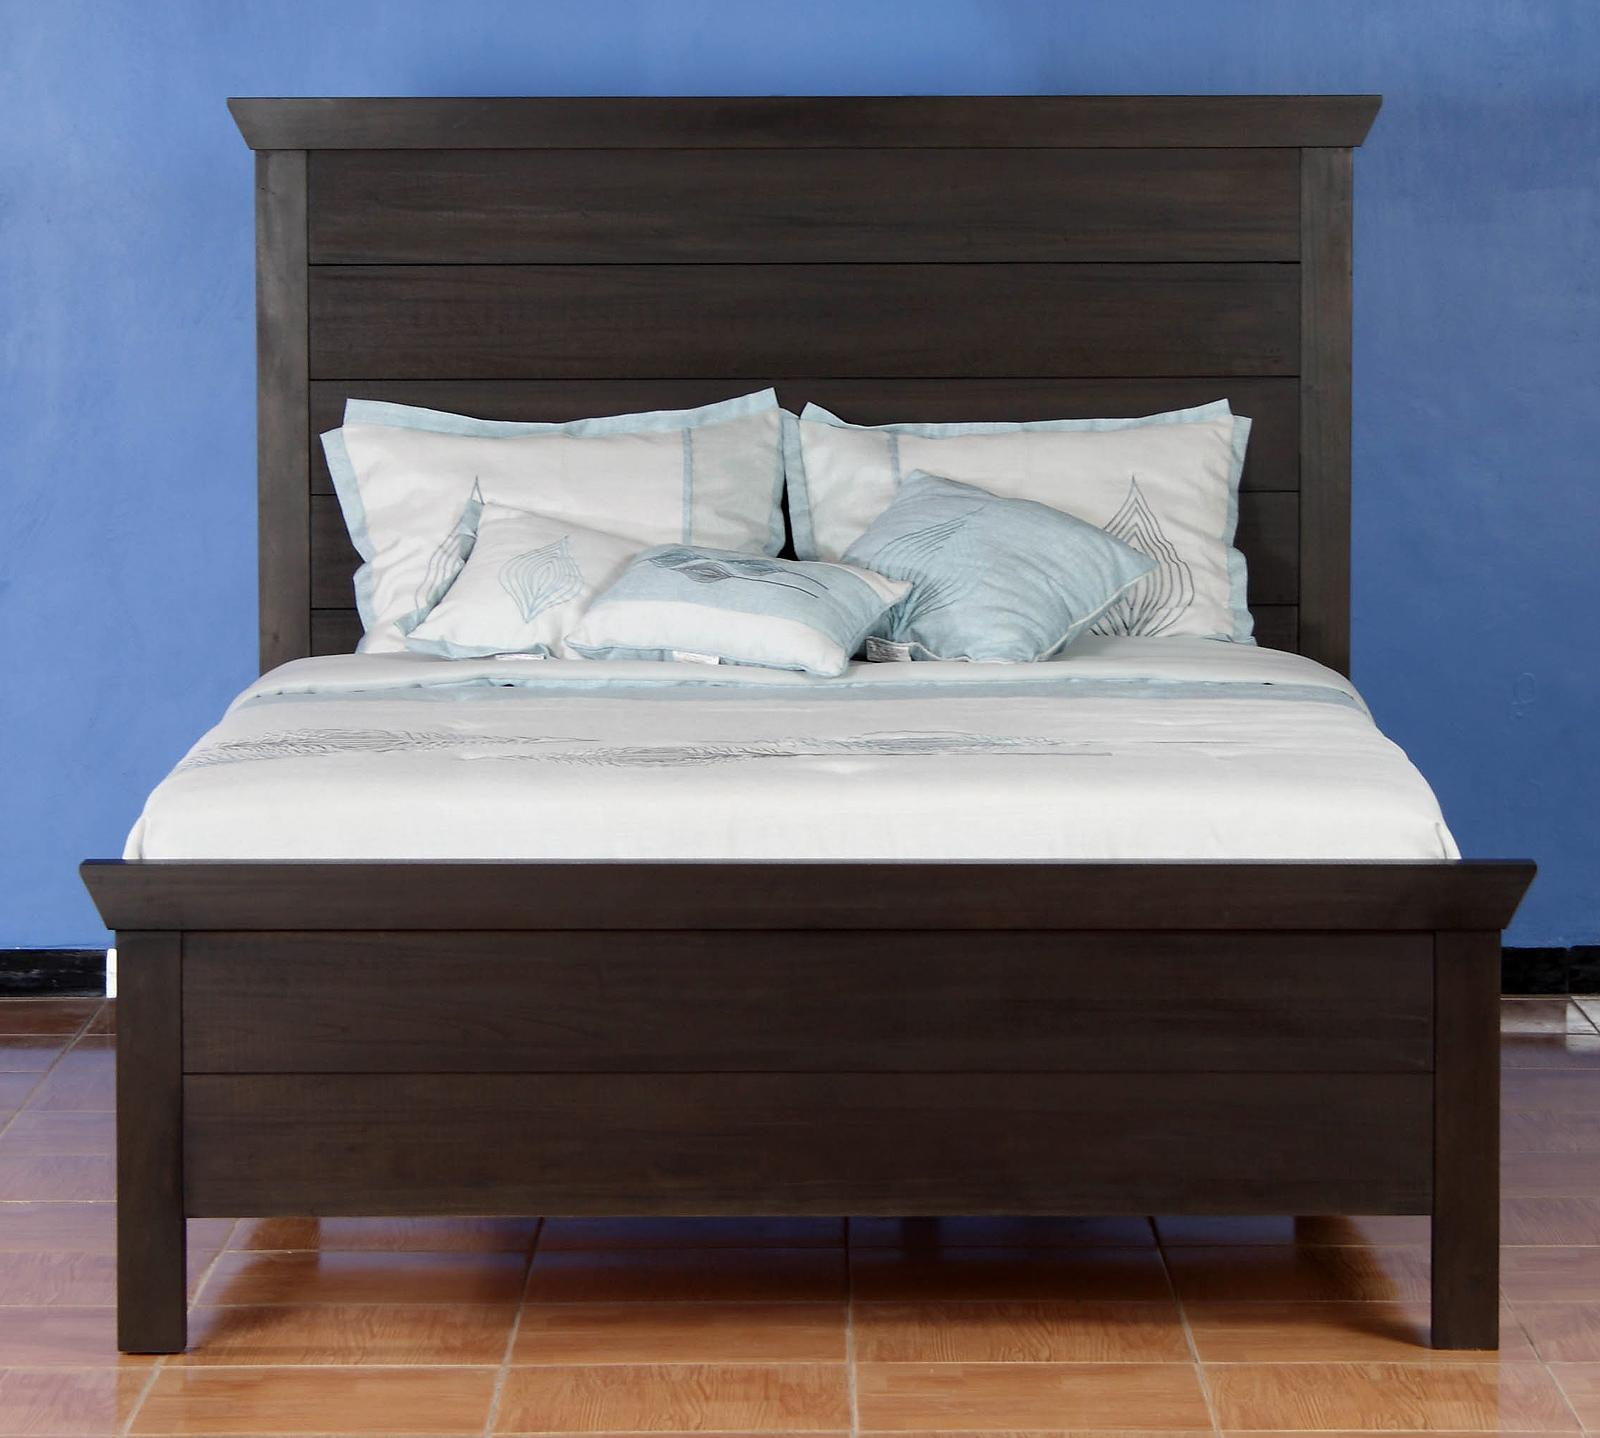 the freedman bed - Sleepys Bed Frame